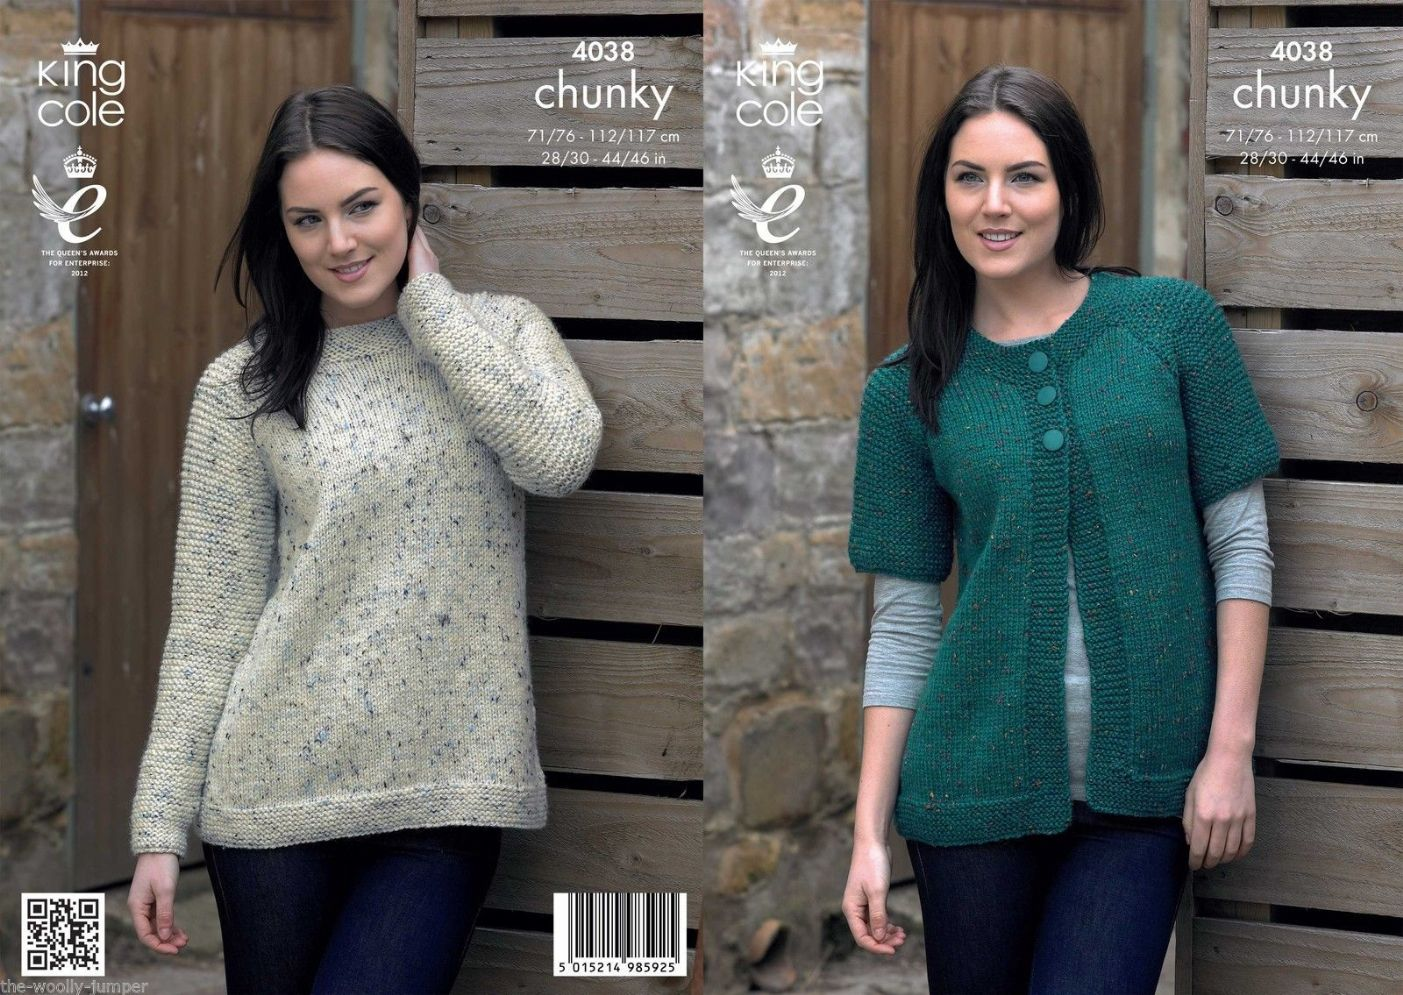 8c90d4e9894b 4038 - KING COLE CHUNKY TWEED CARDIGAN   SWEATER KNITTING PATTERN - 28 TO 46